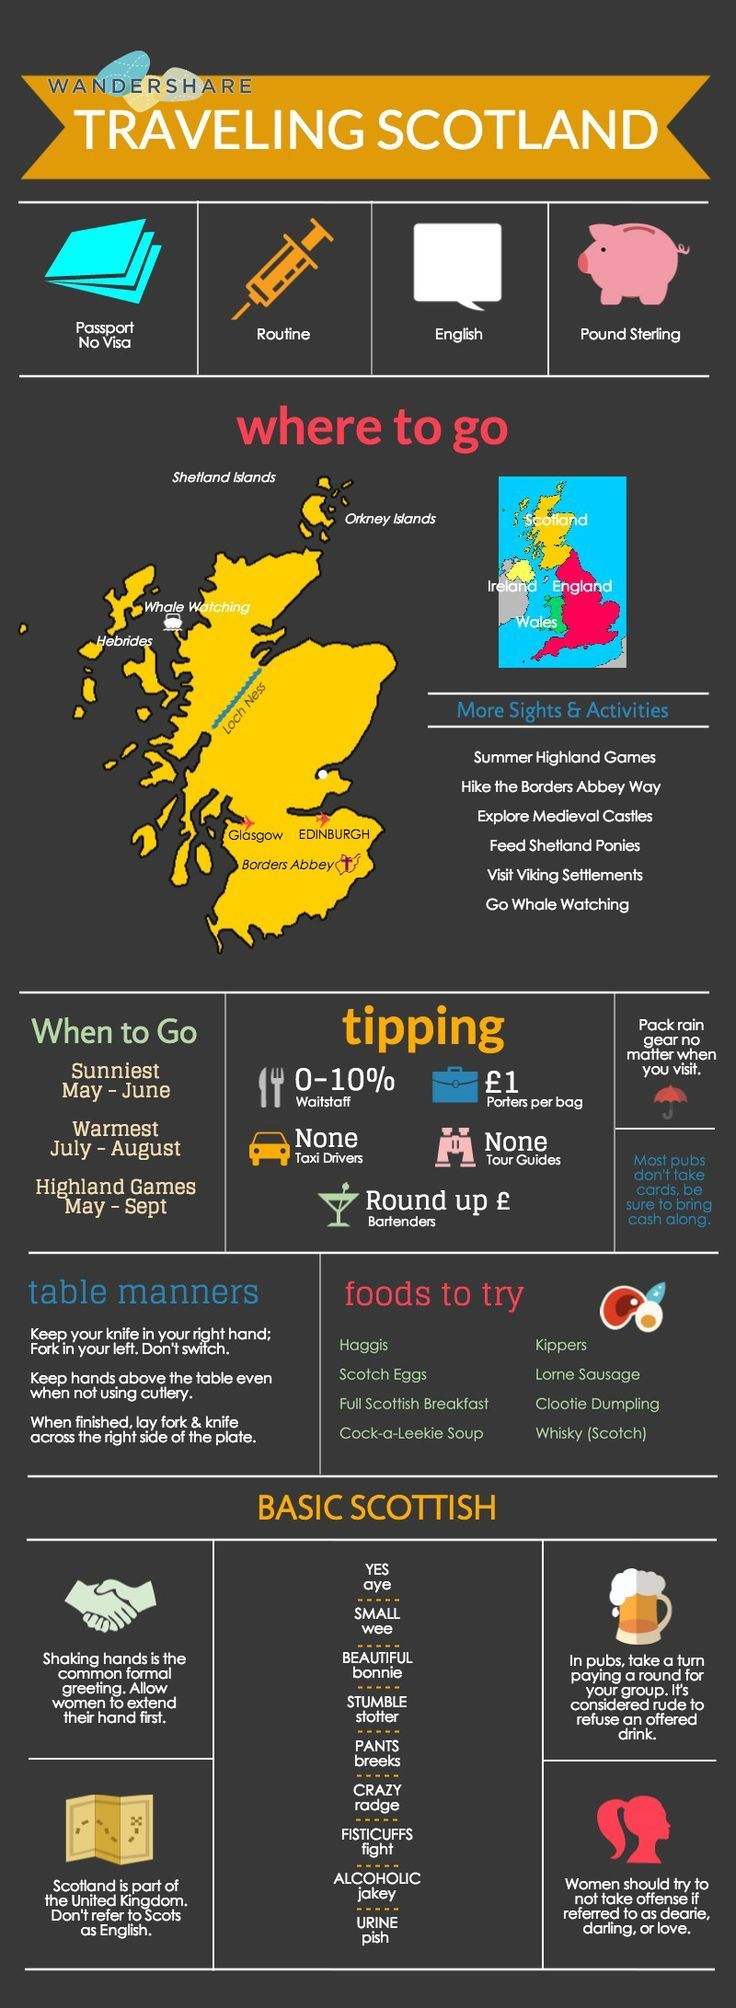 Scotland Travel Cheat Sheet; Sign up at http://www.wandershare.com for high-res image.